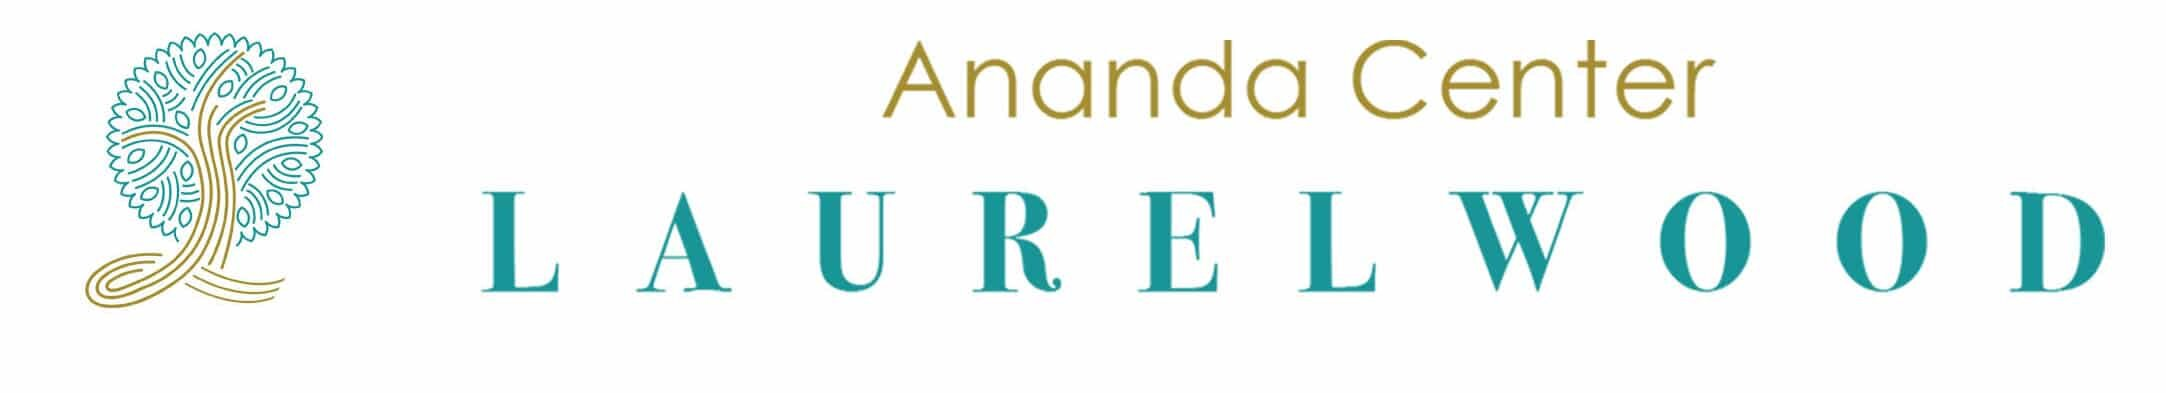 Ananda Laurelwood